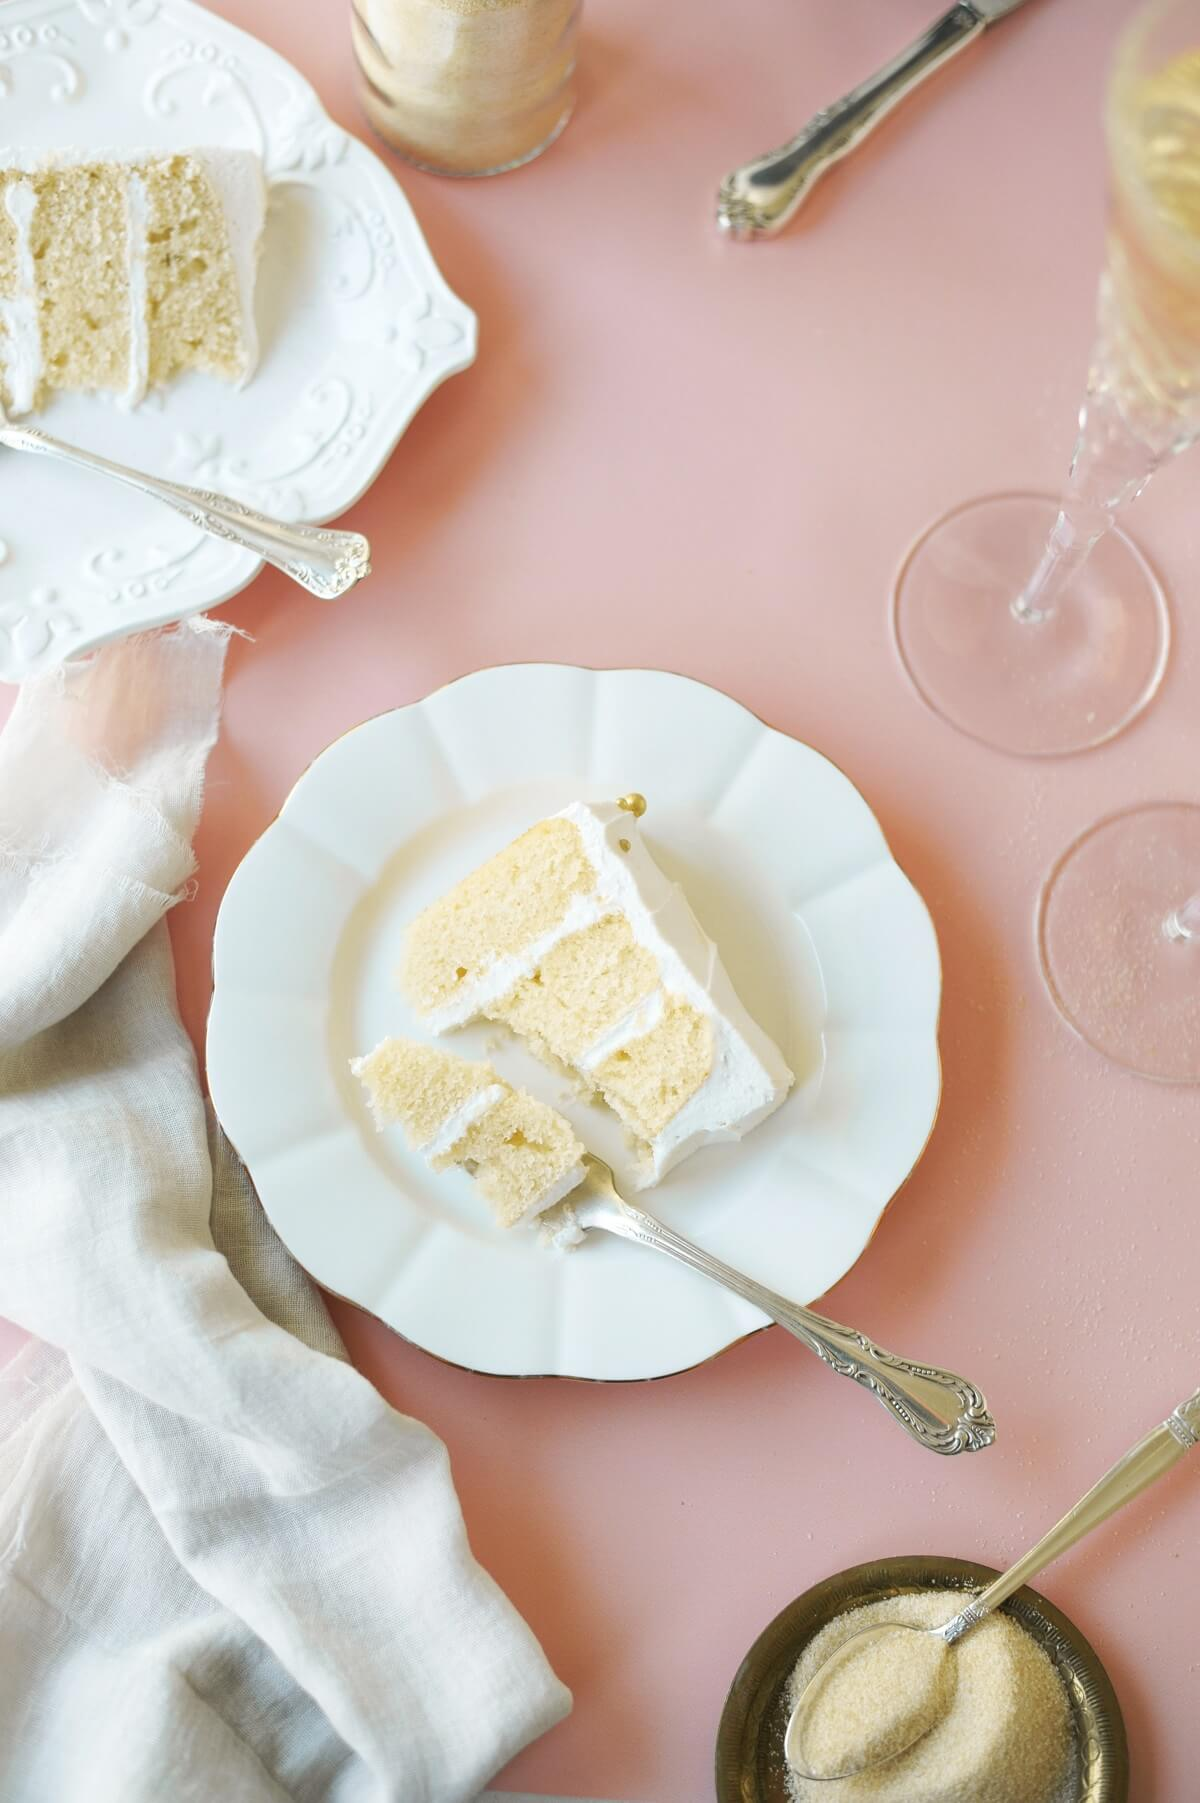 Slices of toasted sugar champagne cake on white plates.